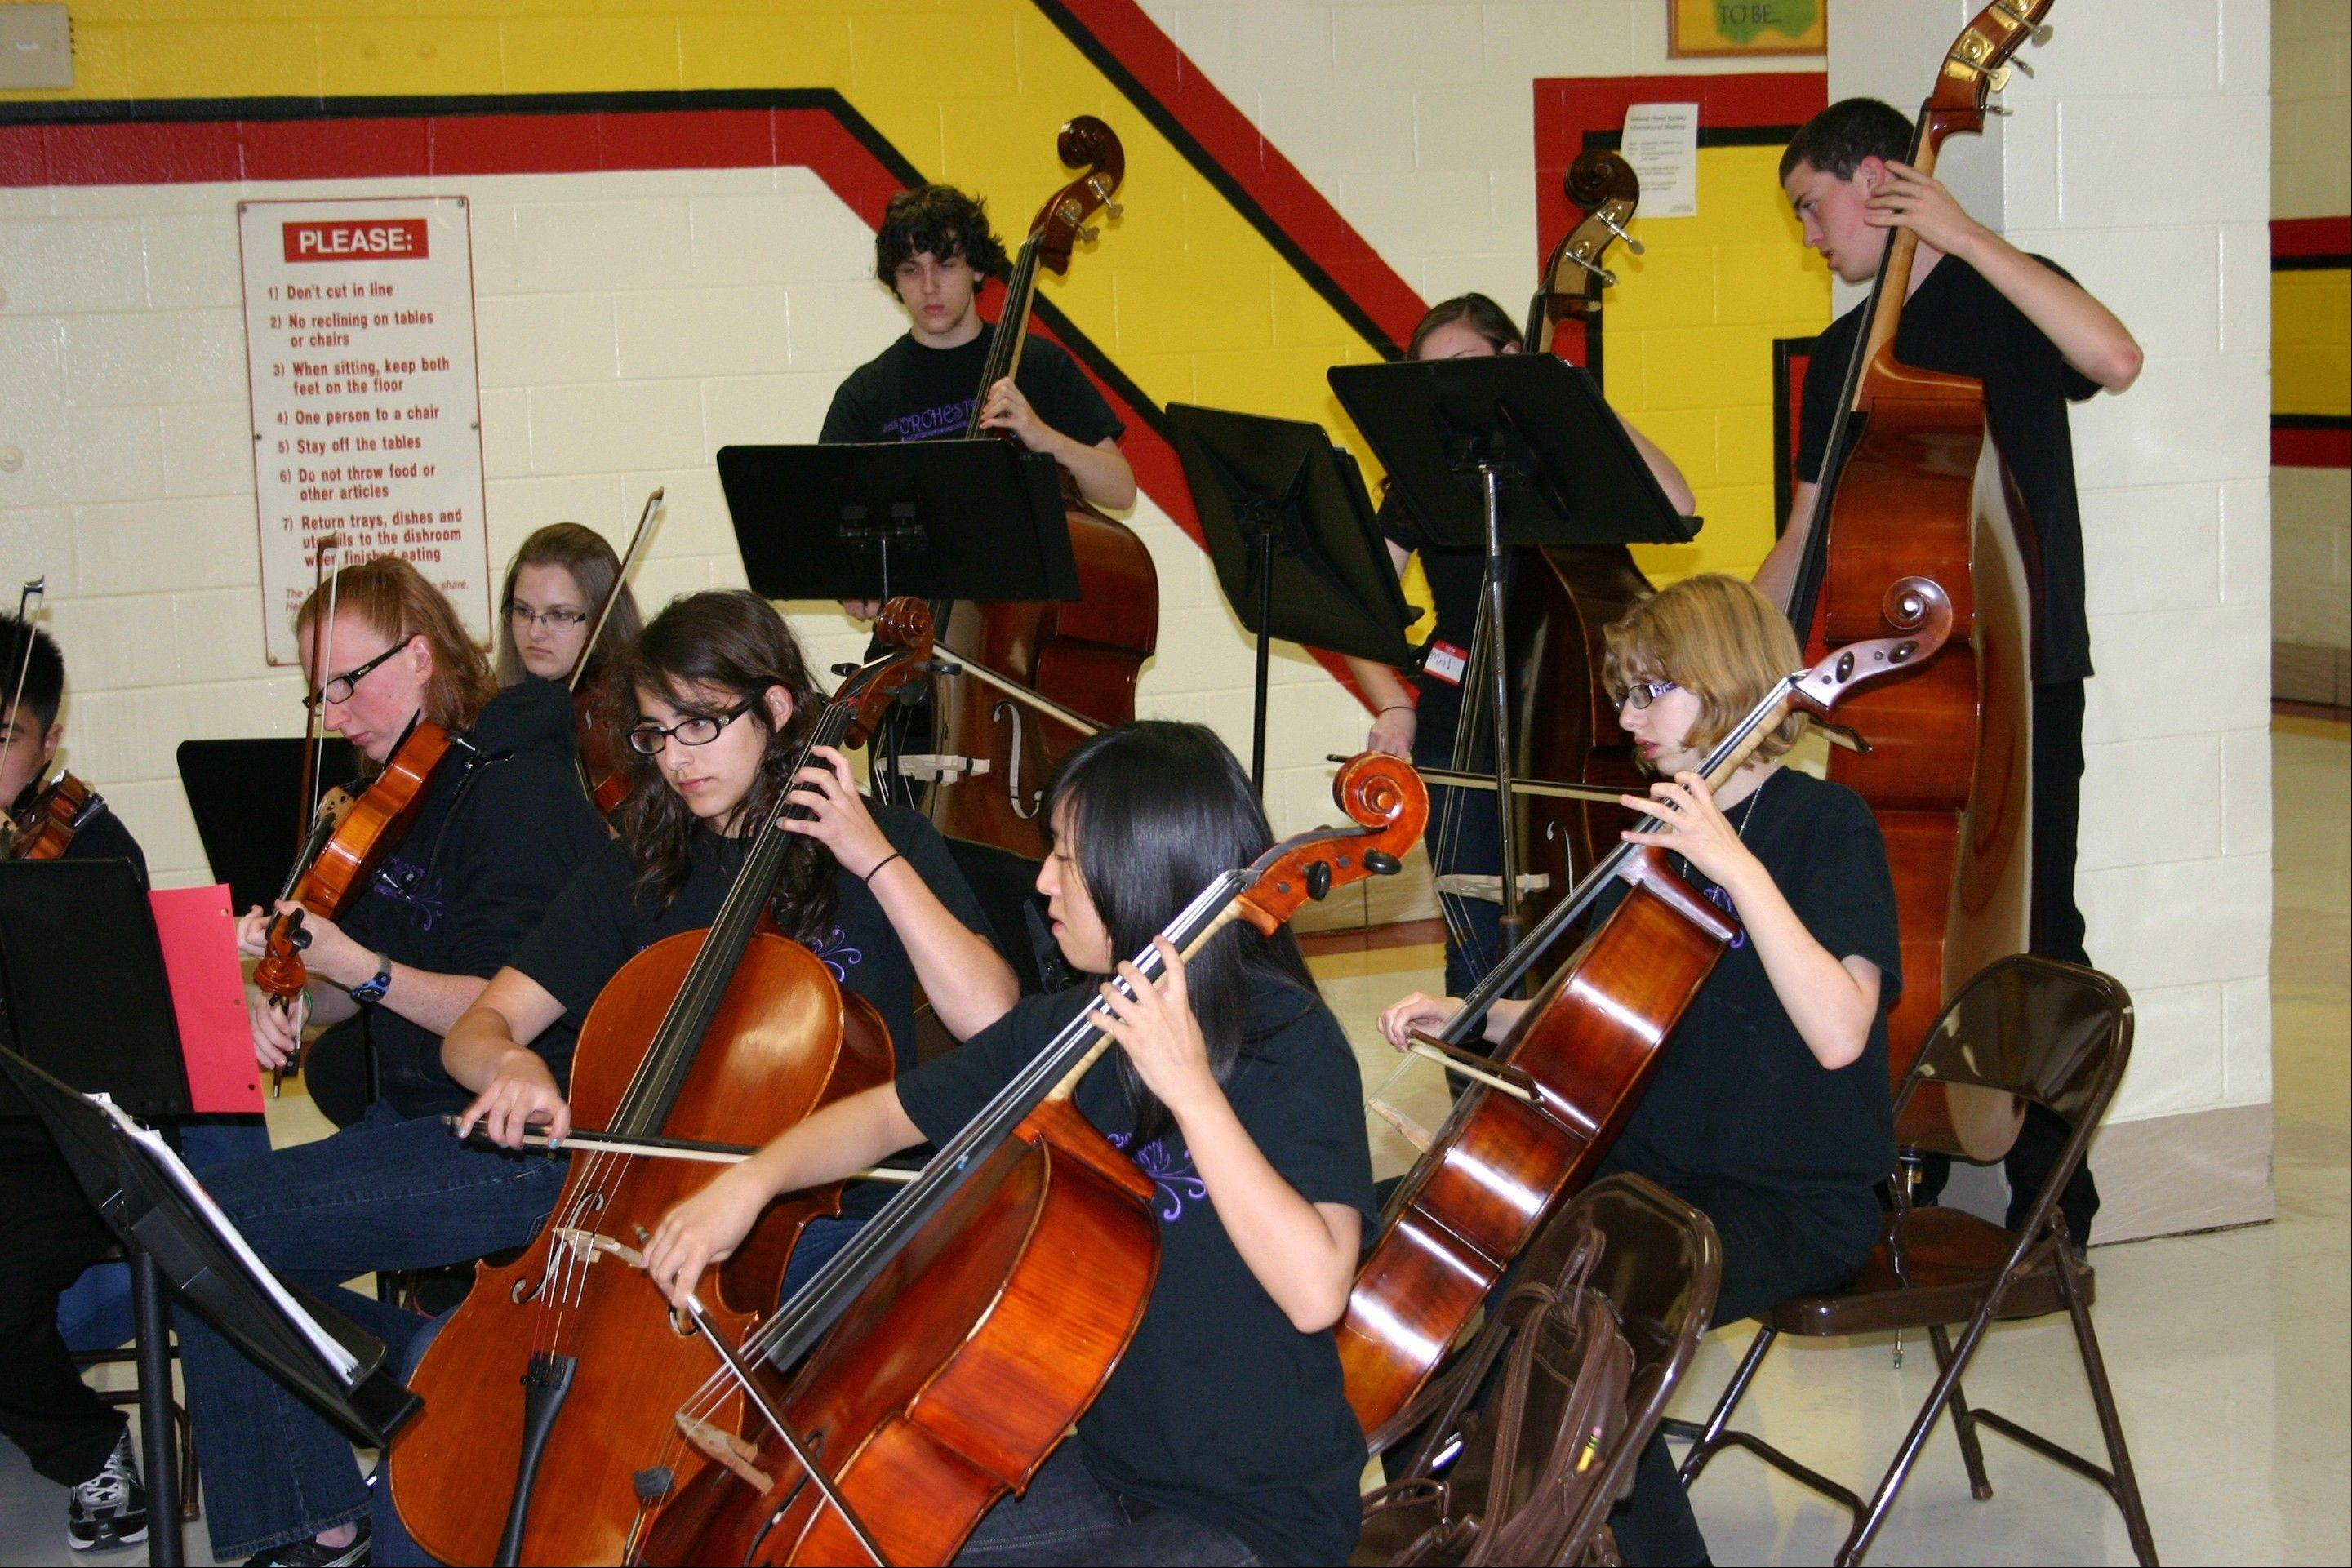 Open House at Schaumburg High School featured performances by the school's orchestra in the cafeteria throughout the evening.